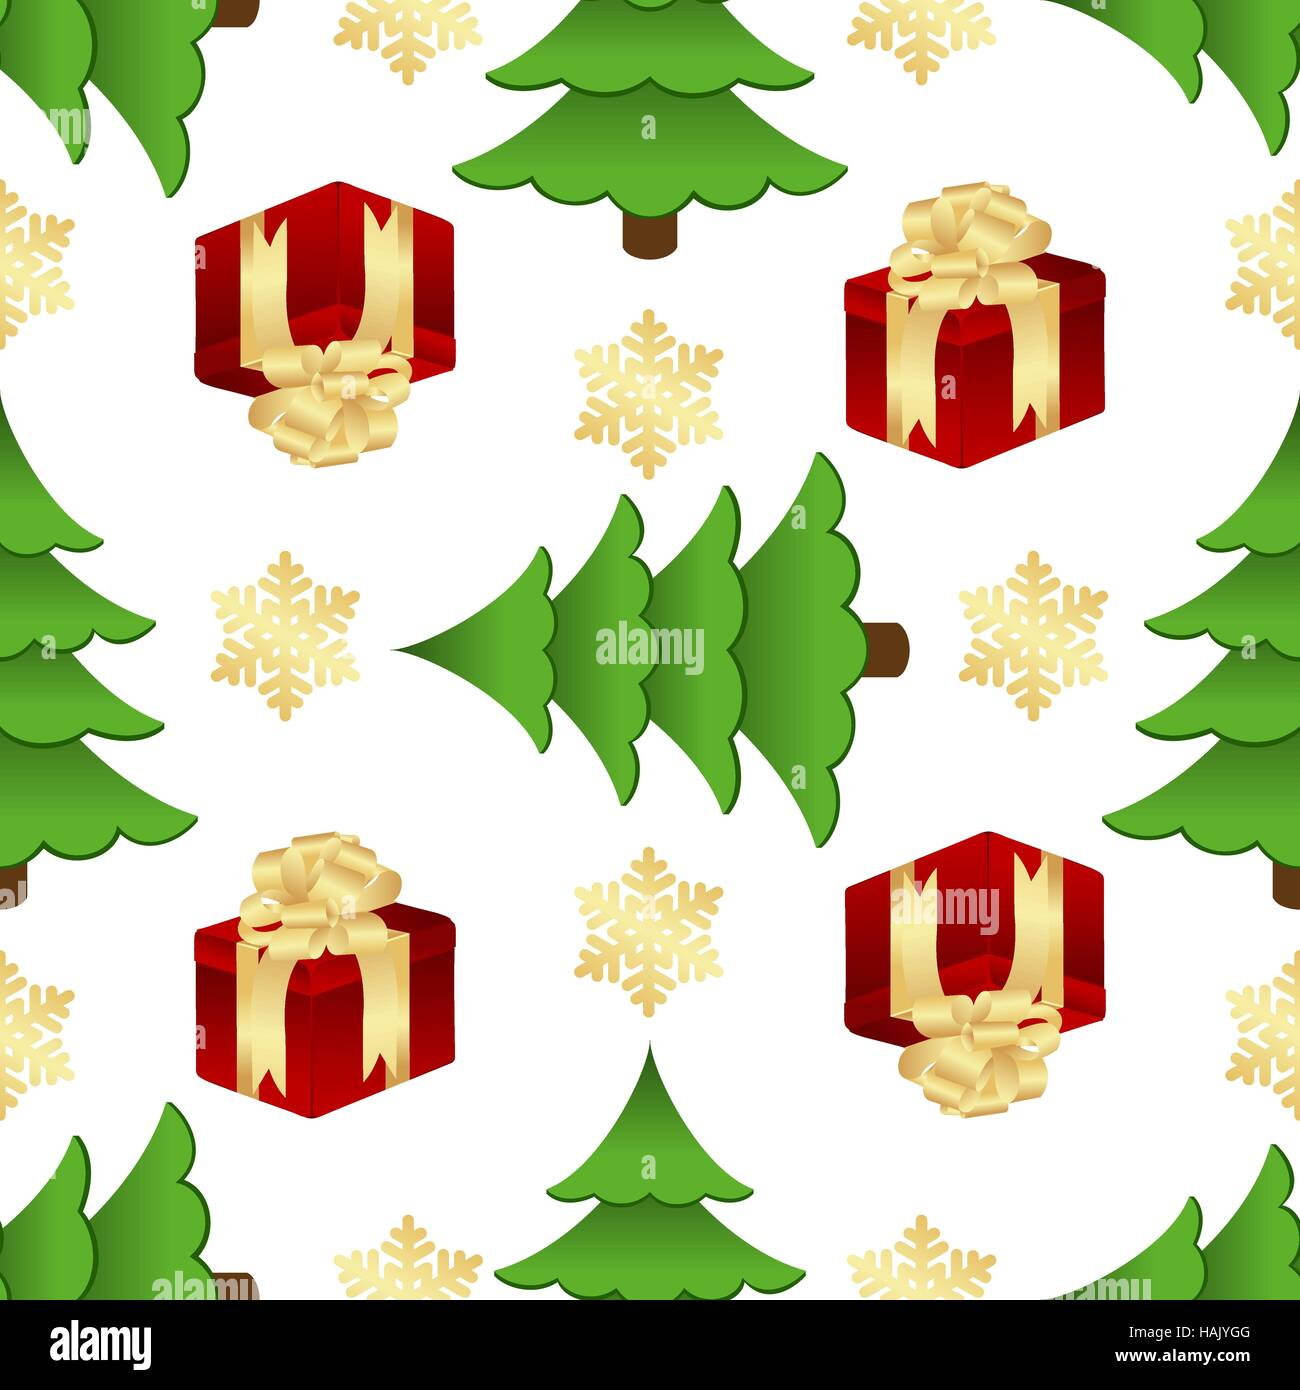 Christmas pattern with gifts and spruces - Stock Vector